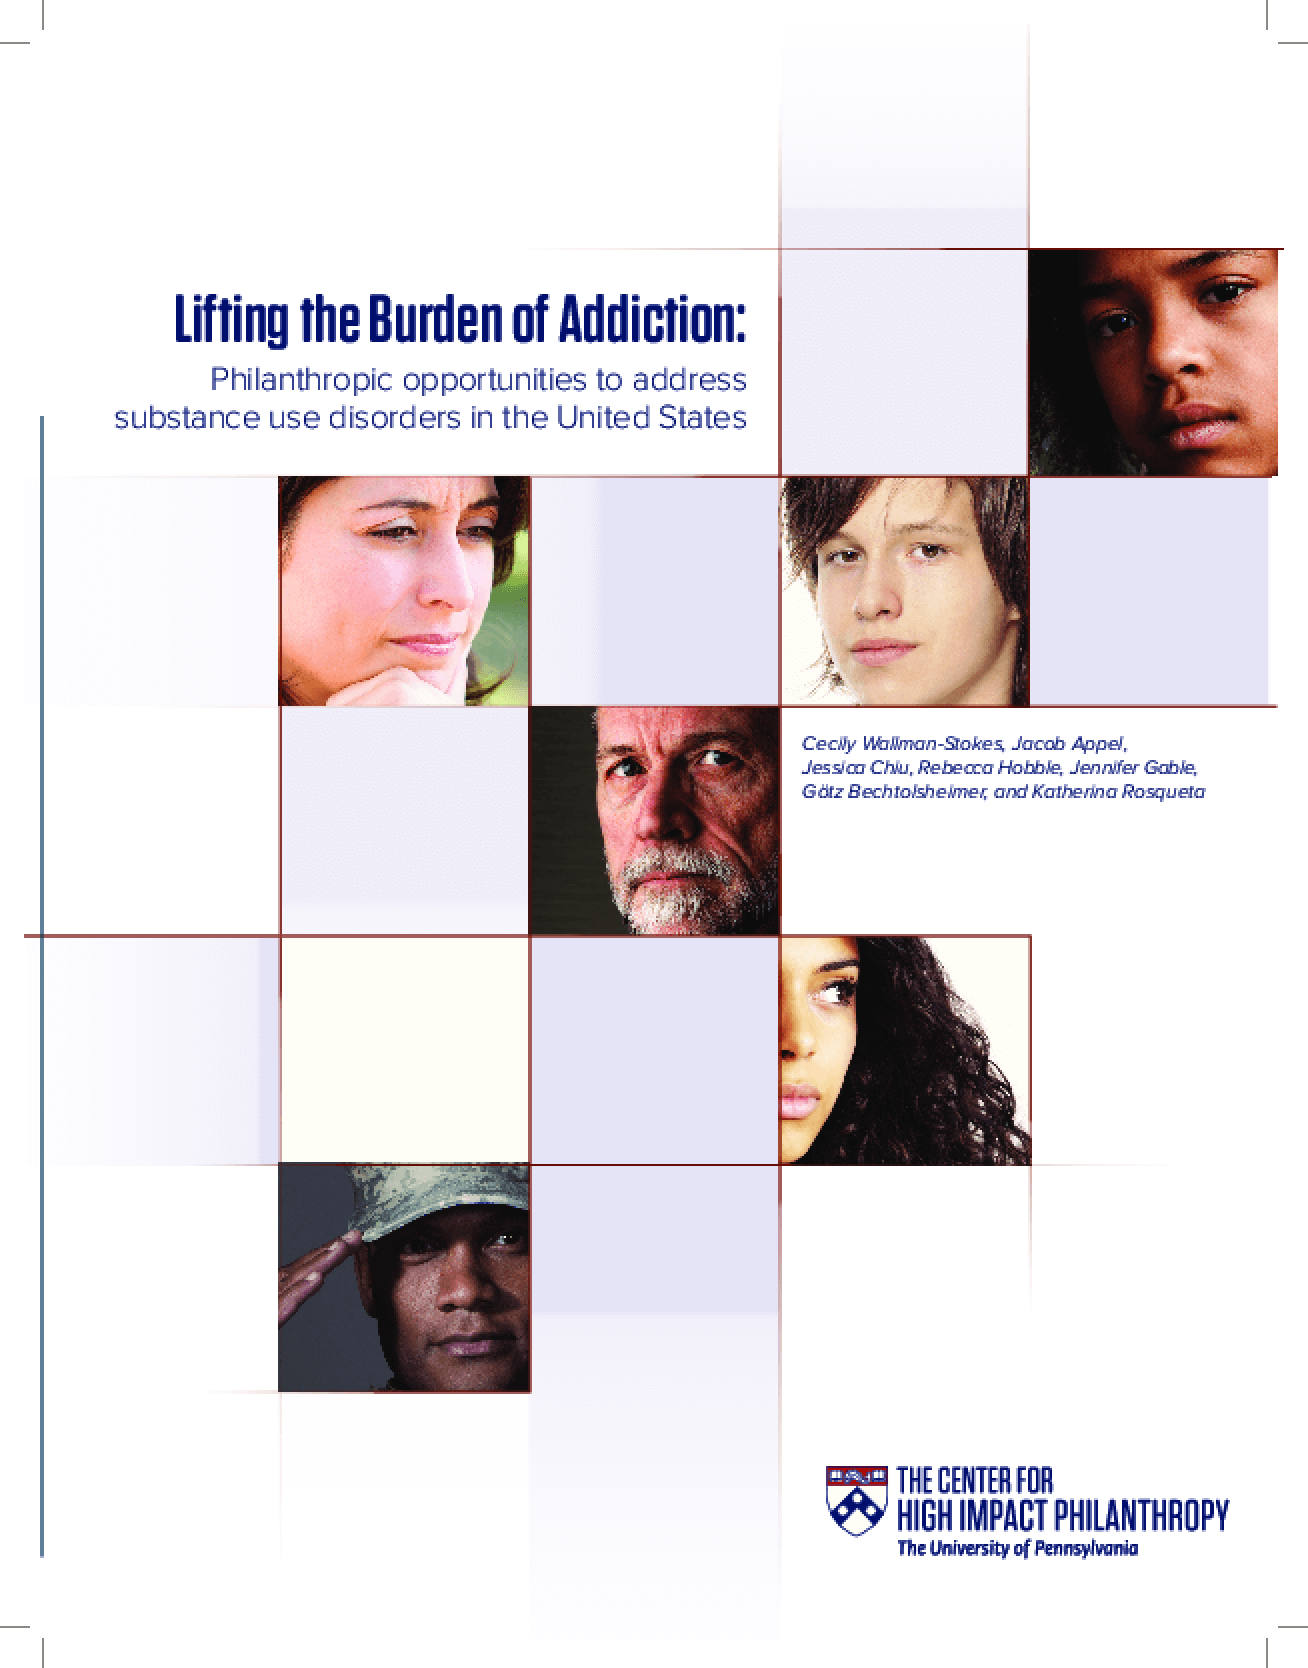 Lifting the Burden of Addiction: Philanthropic Opportunities to Address Substance Use Disorders in the United States